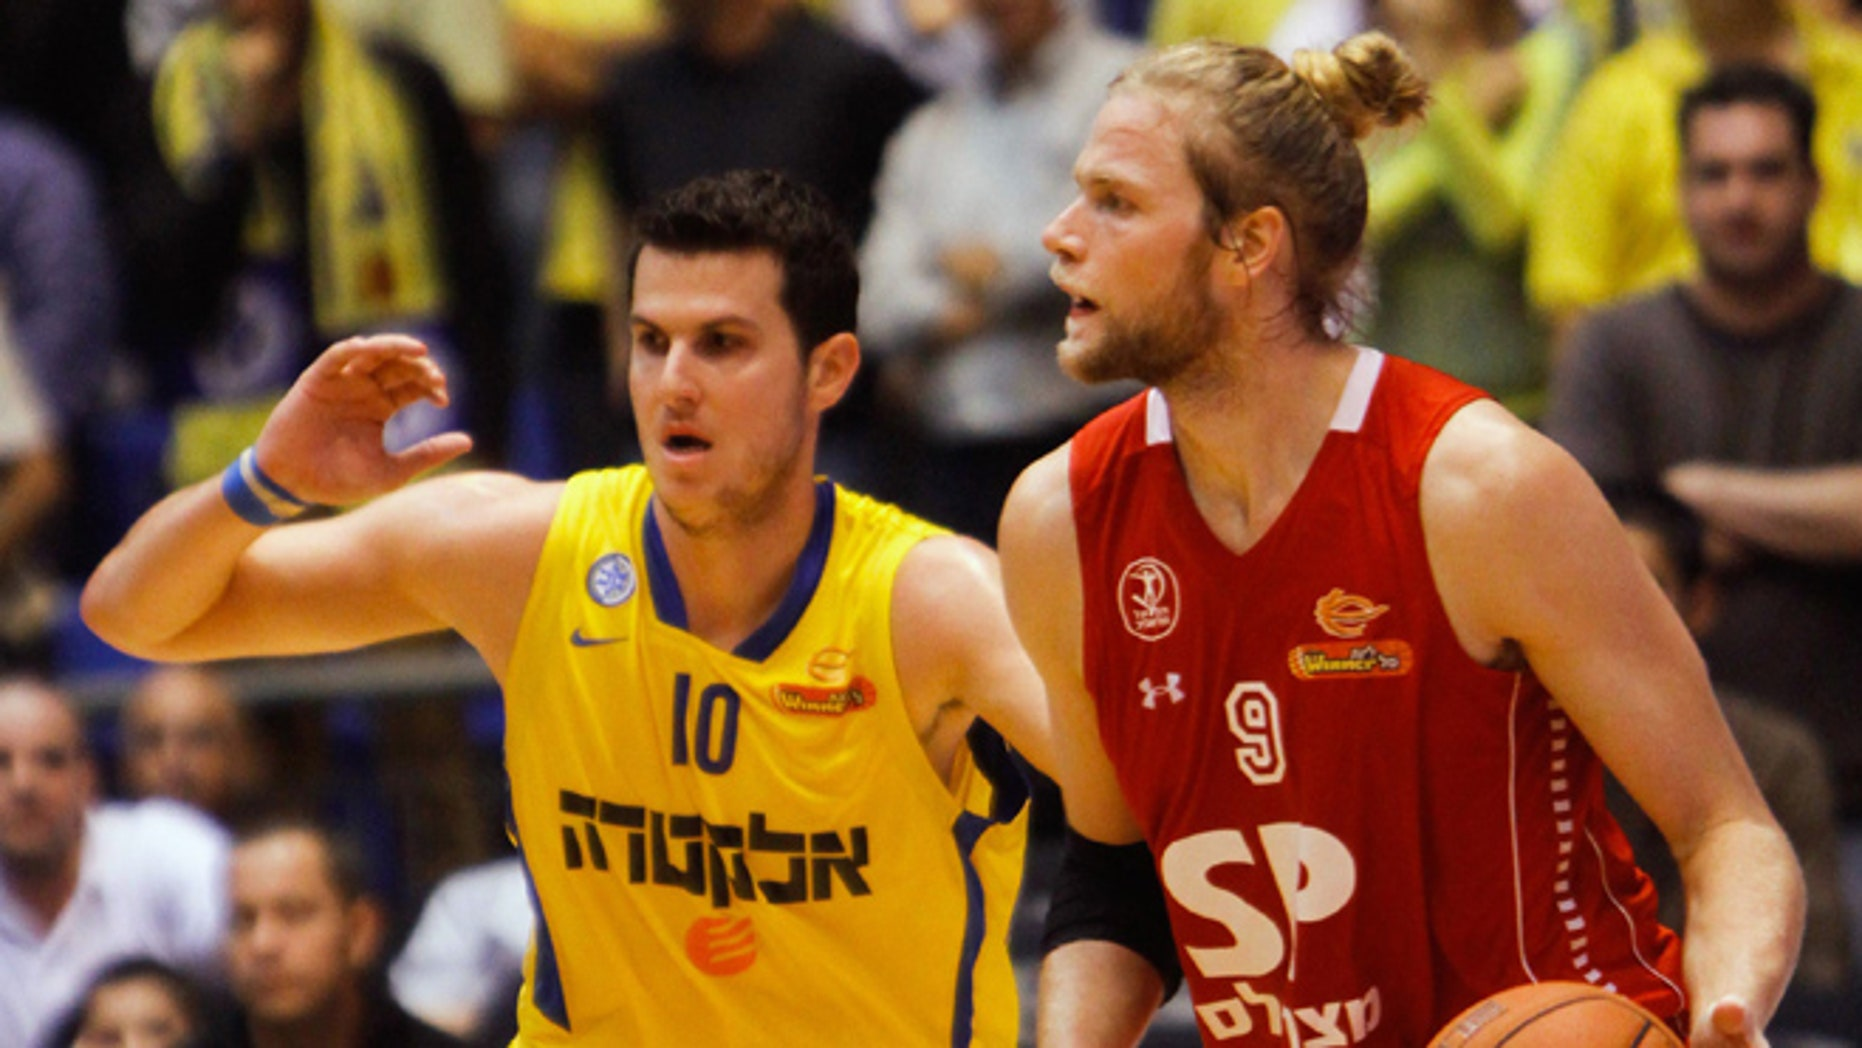 Dec. 2, 2012: In this photo, Maccabi Tel Aviv basketball club captain Guy Pnini, left, and Hapoel Tel Aviv player Jonathan Skjöldebrand, play during a match between the clubs in Tel Aviv.